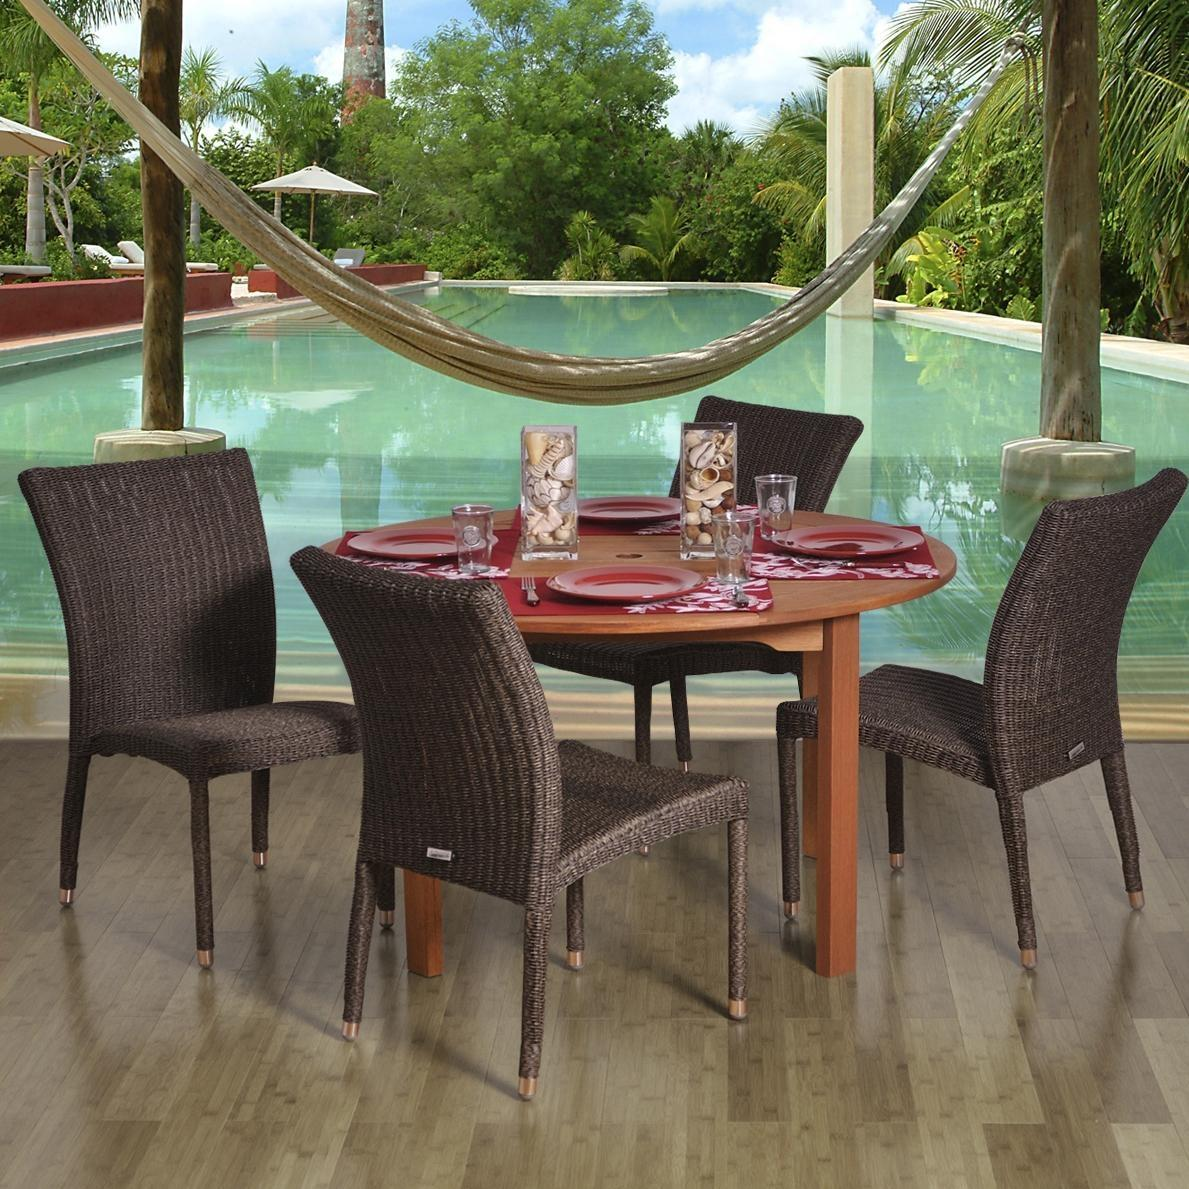 Amazonia Lorraine 4-Person Resin Wicker Patio Dining Set With Stacking Chairs 2866260